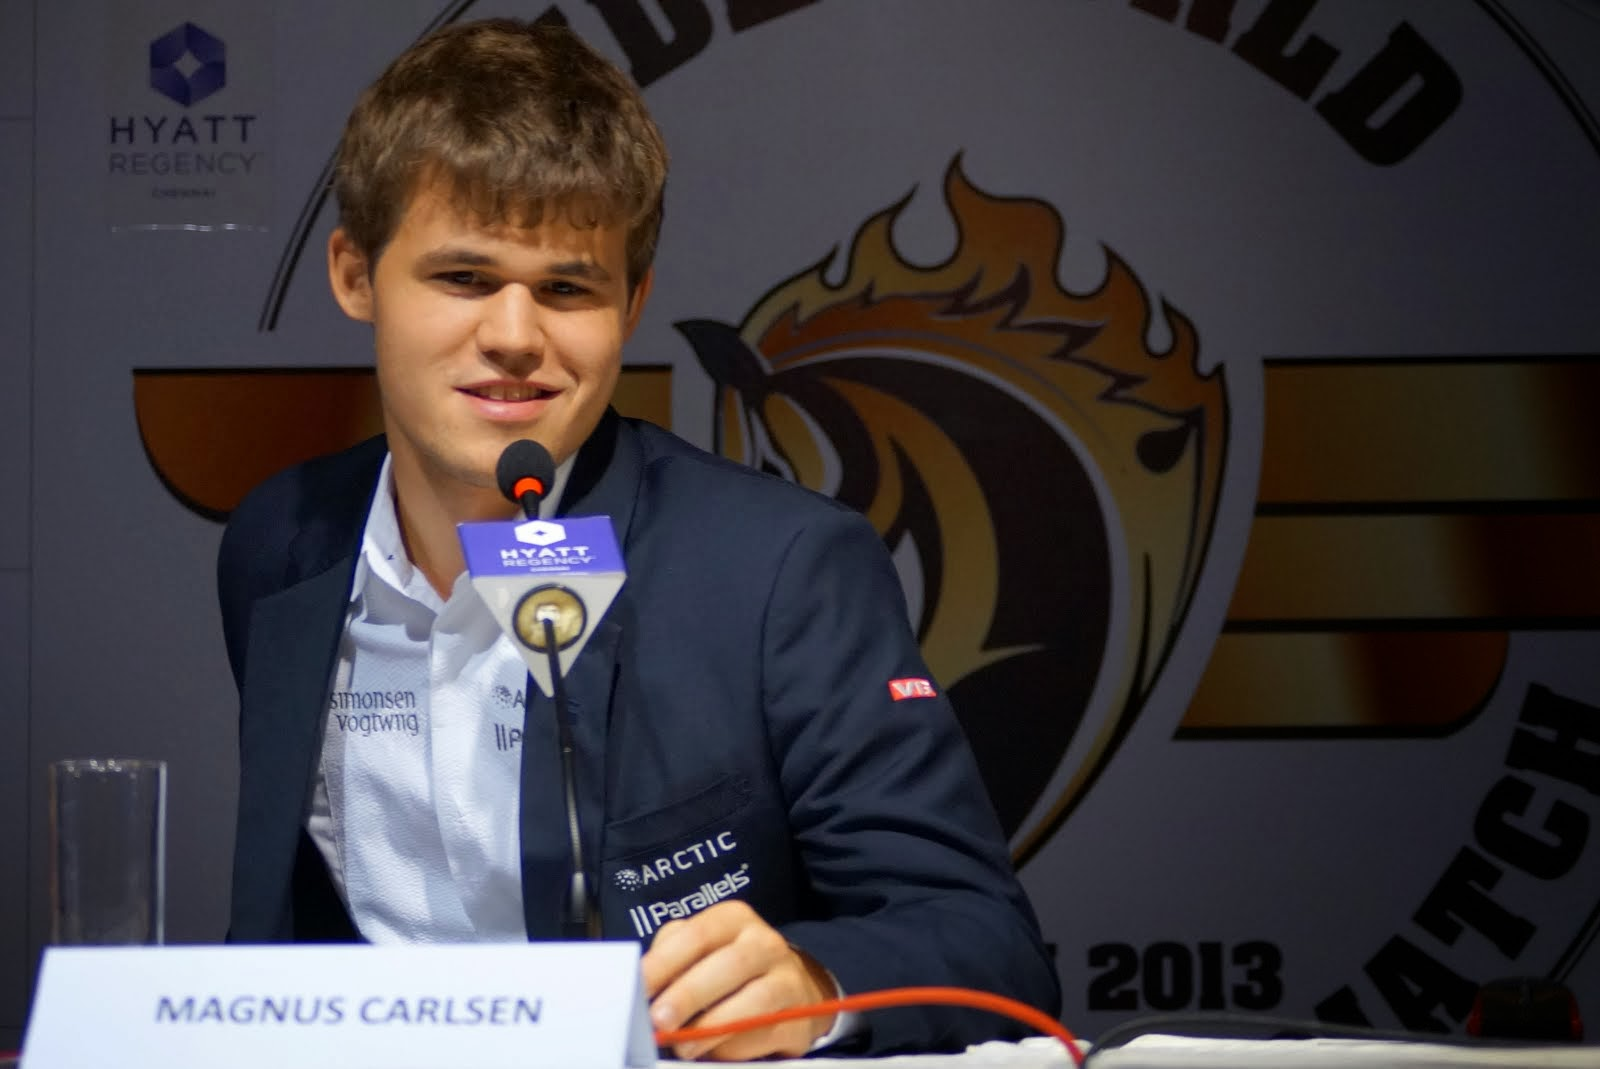 Who will challenge Magnus Carlsen for the world title in 2014?